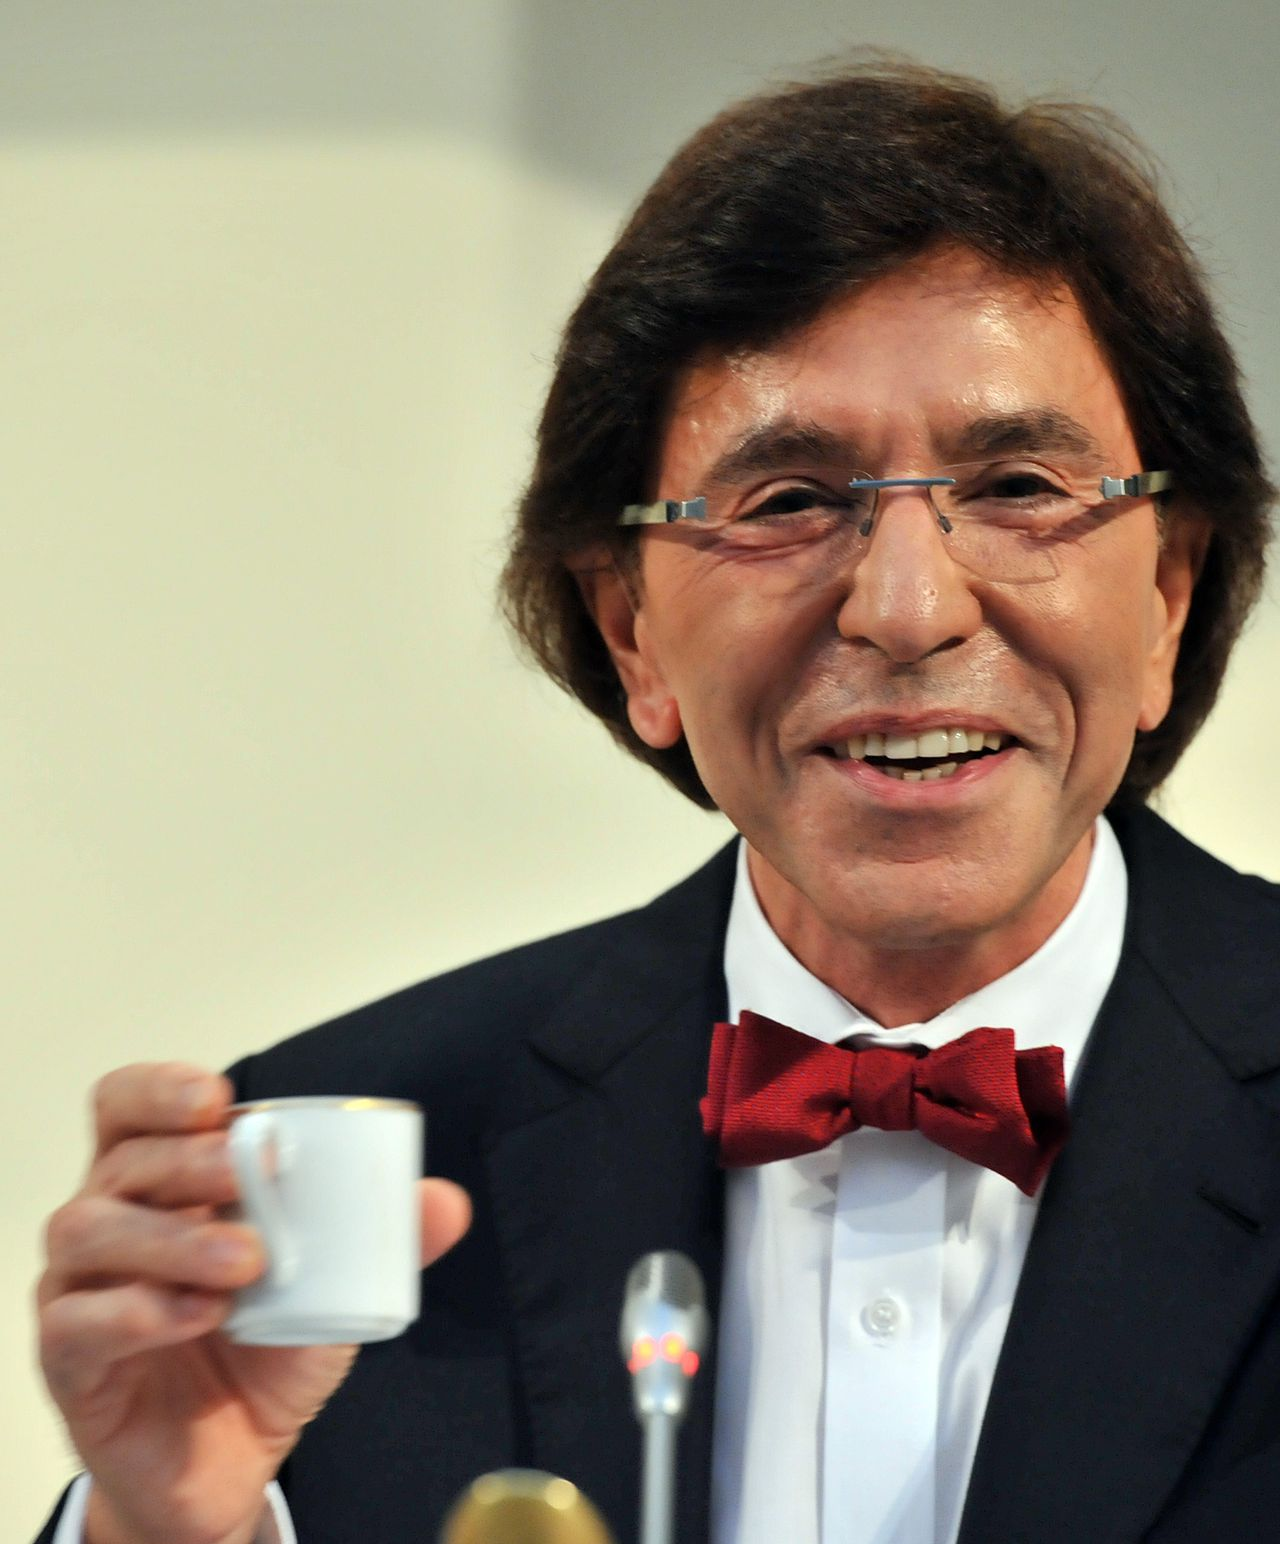 Belgian French-speaking Socialist leader Elio Di Rupo holds a cup gives a press conference on November 27,2011 at the Belgian Parliament in Brussels focused on the way ahead for a Belgium once more projecting a unified image. Elio Di Rupo, Belgium's premier-in-waiting, outlines the way ahead for his country, a day after ending a 19-month government paralysis with an EU-friendly budget under market pressure. AFP PHOTO / GEORGES GOBET